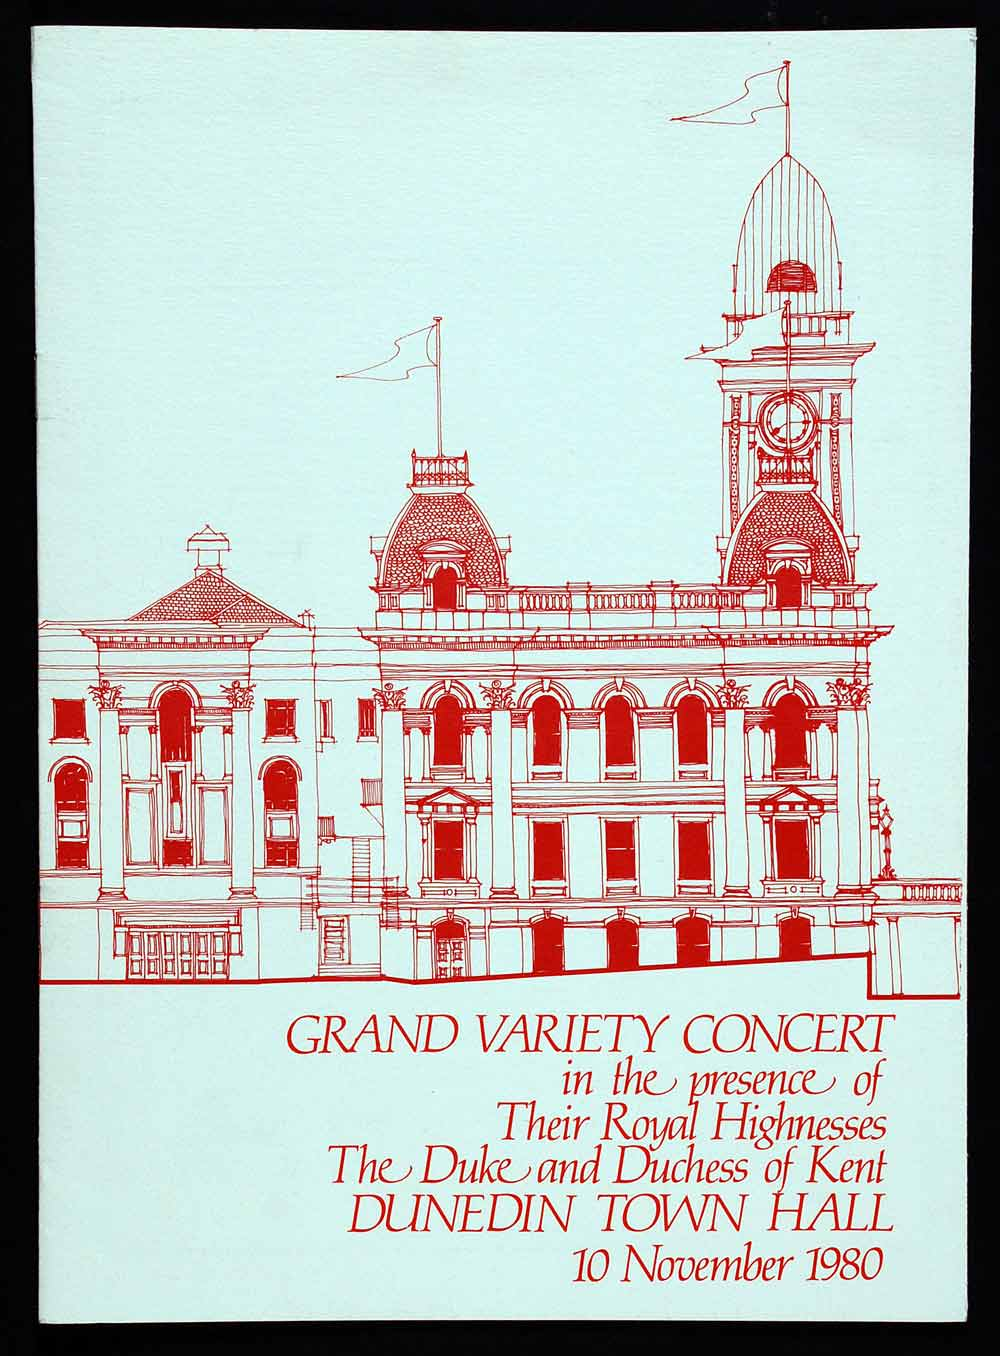 Programme. Grand variety concert in the presence of Their Royal Highnesses, the Duke and Duchess of Kent; Dunedin Town Hall 10 November 1980. Dunedin: Printed by Kerr Printing & Stationery Ltd., [1979].